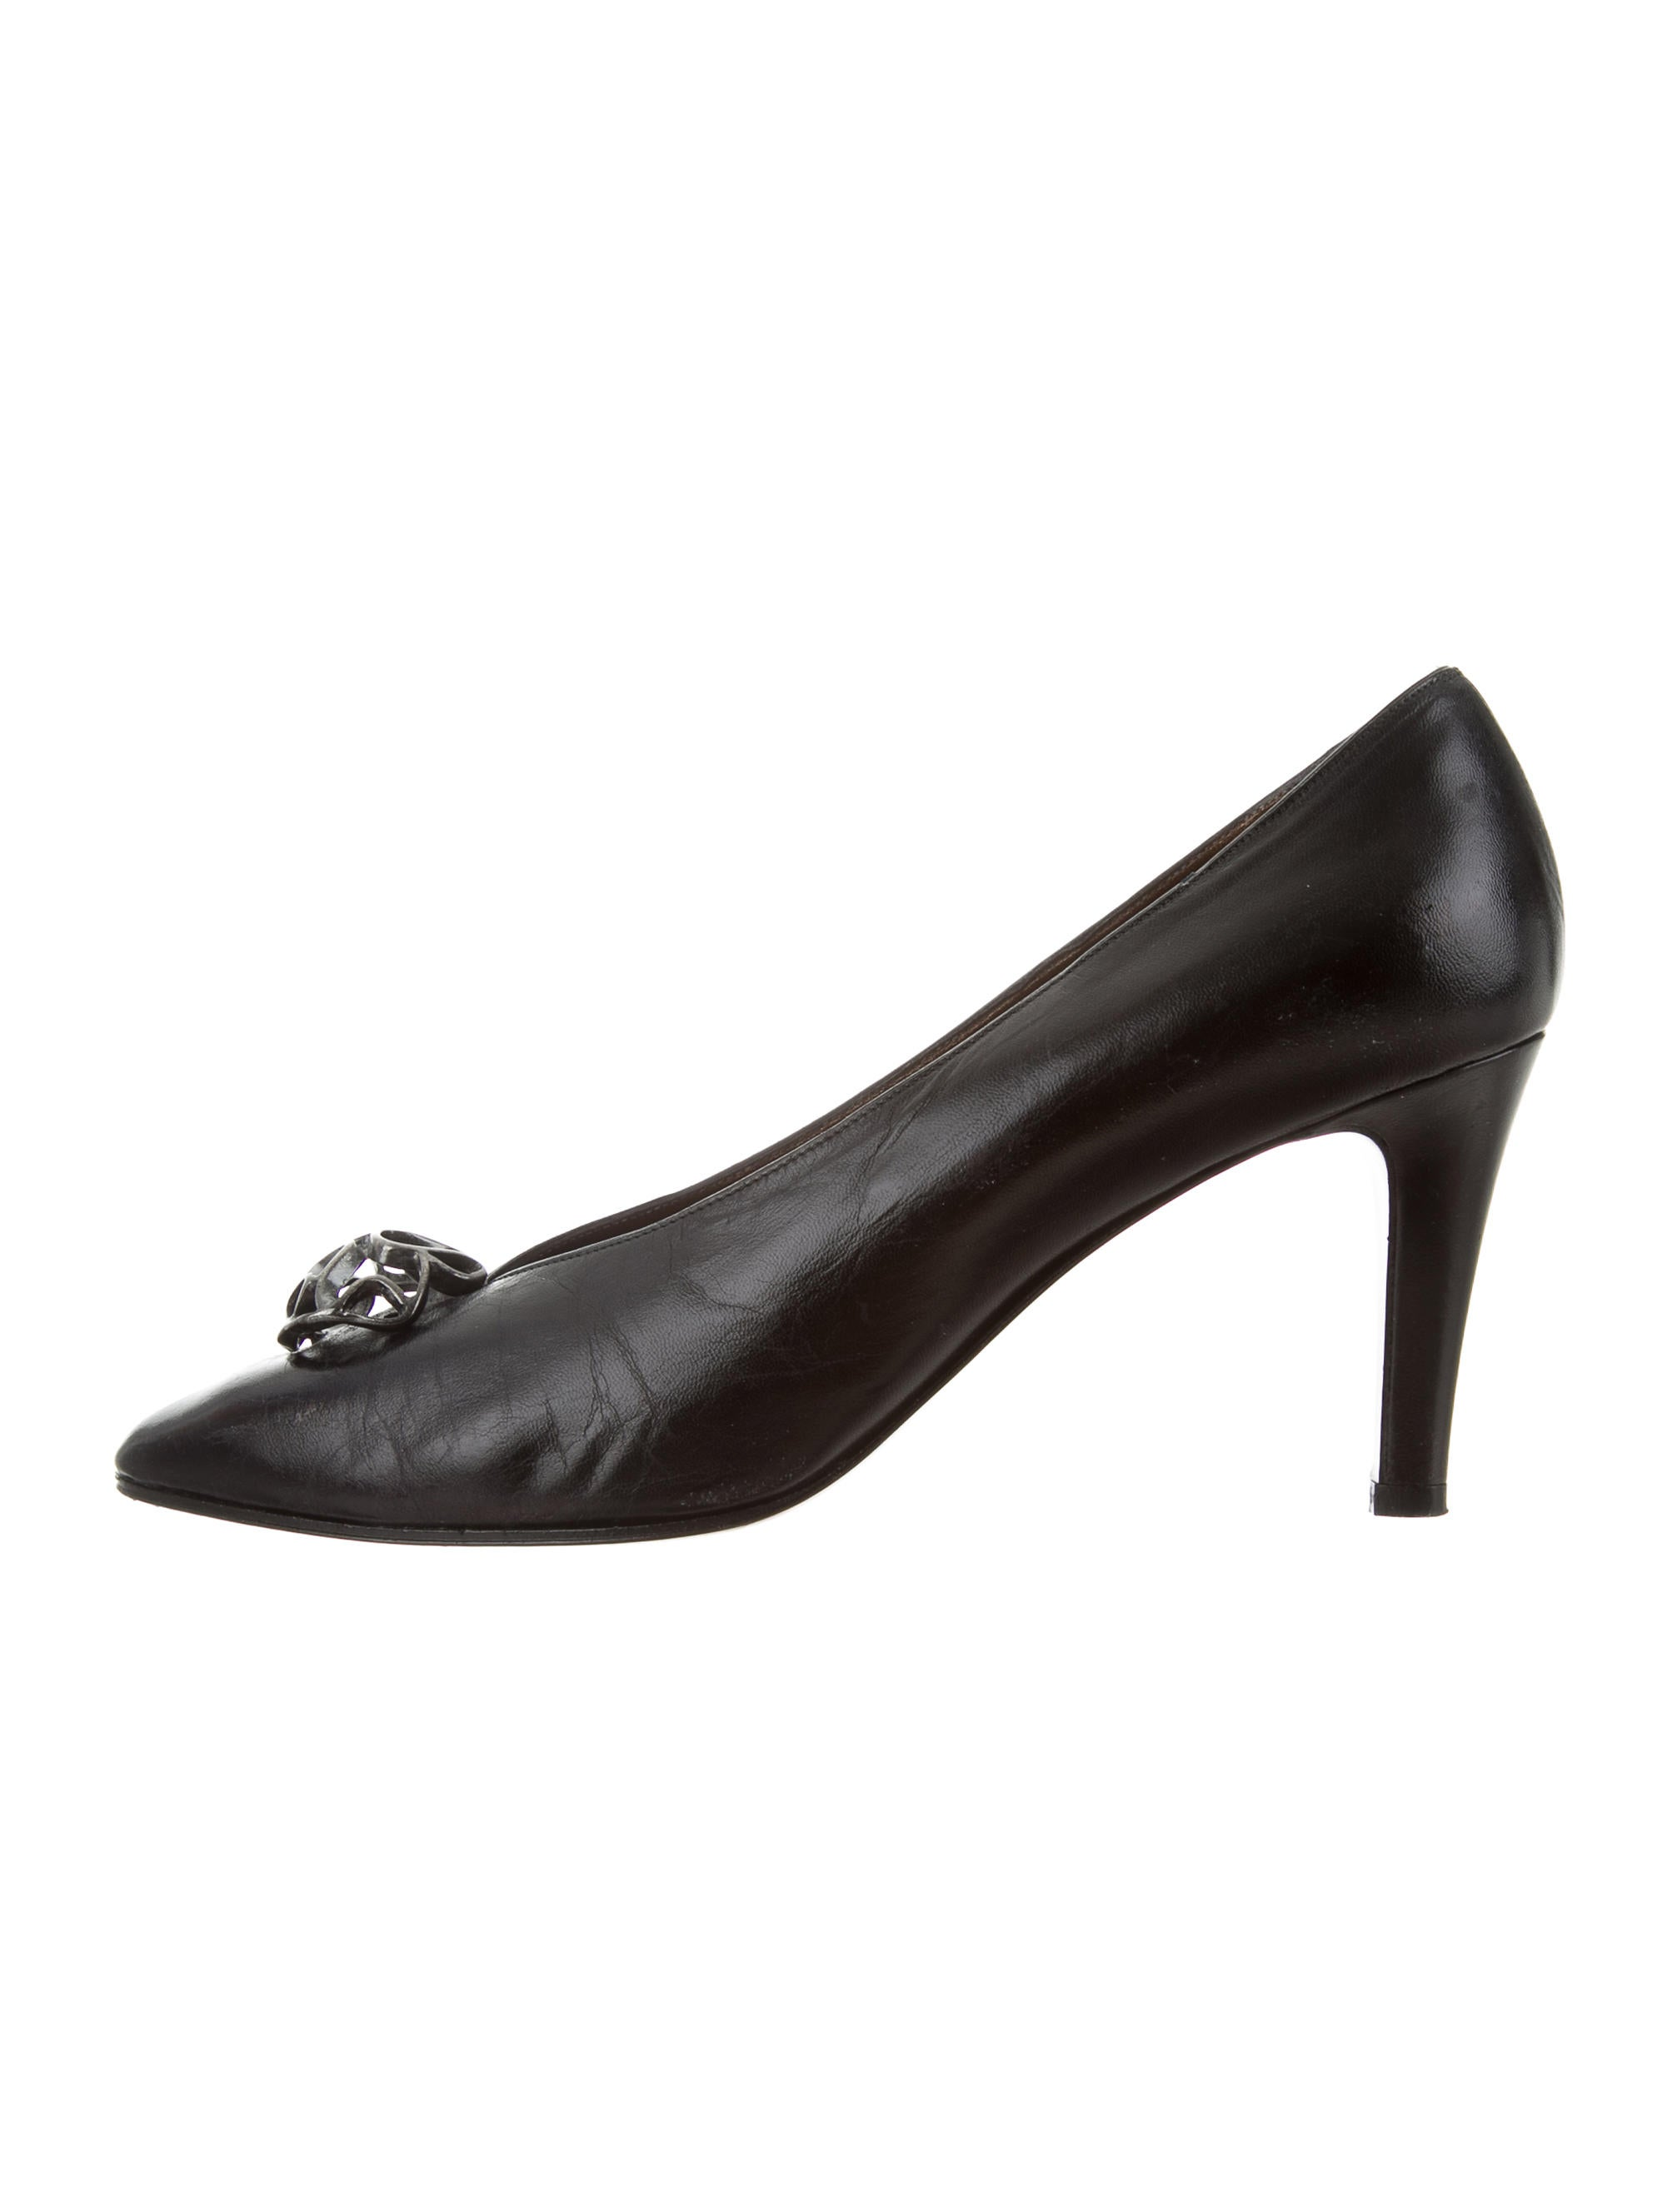 buy cheap outlet locations Yves Saint Laurent Leather Embellished Pumps factory outlet cheap online original for sale free shipping pick a best for sale ZdW80ET